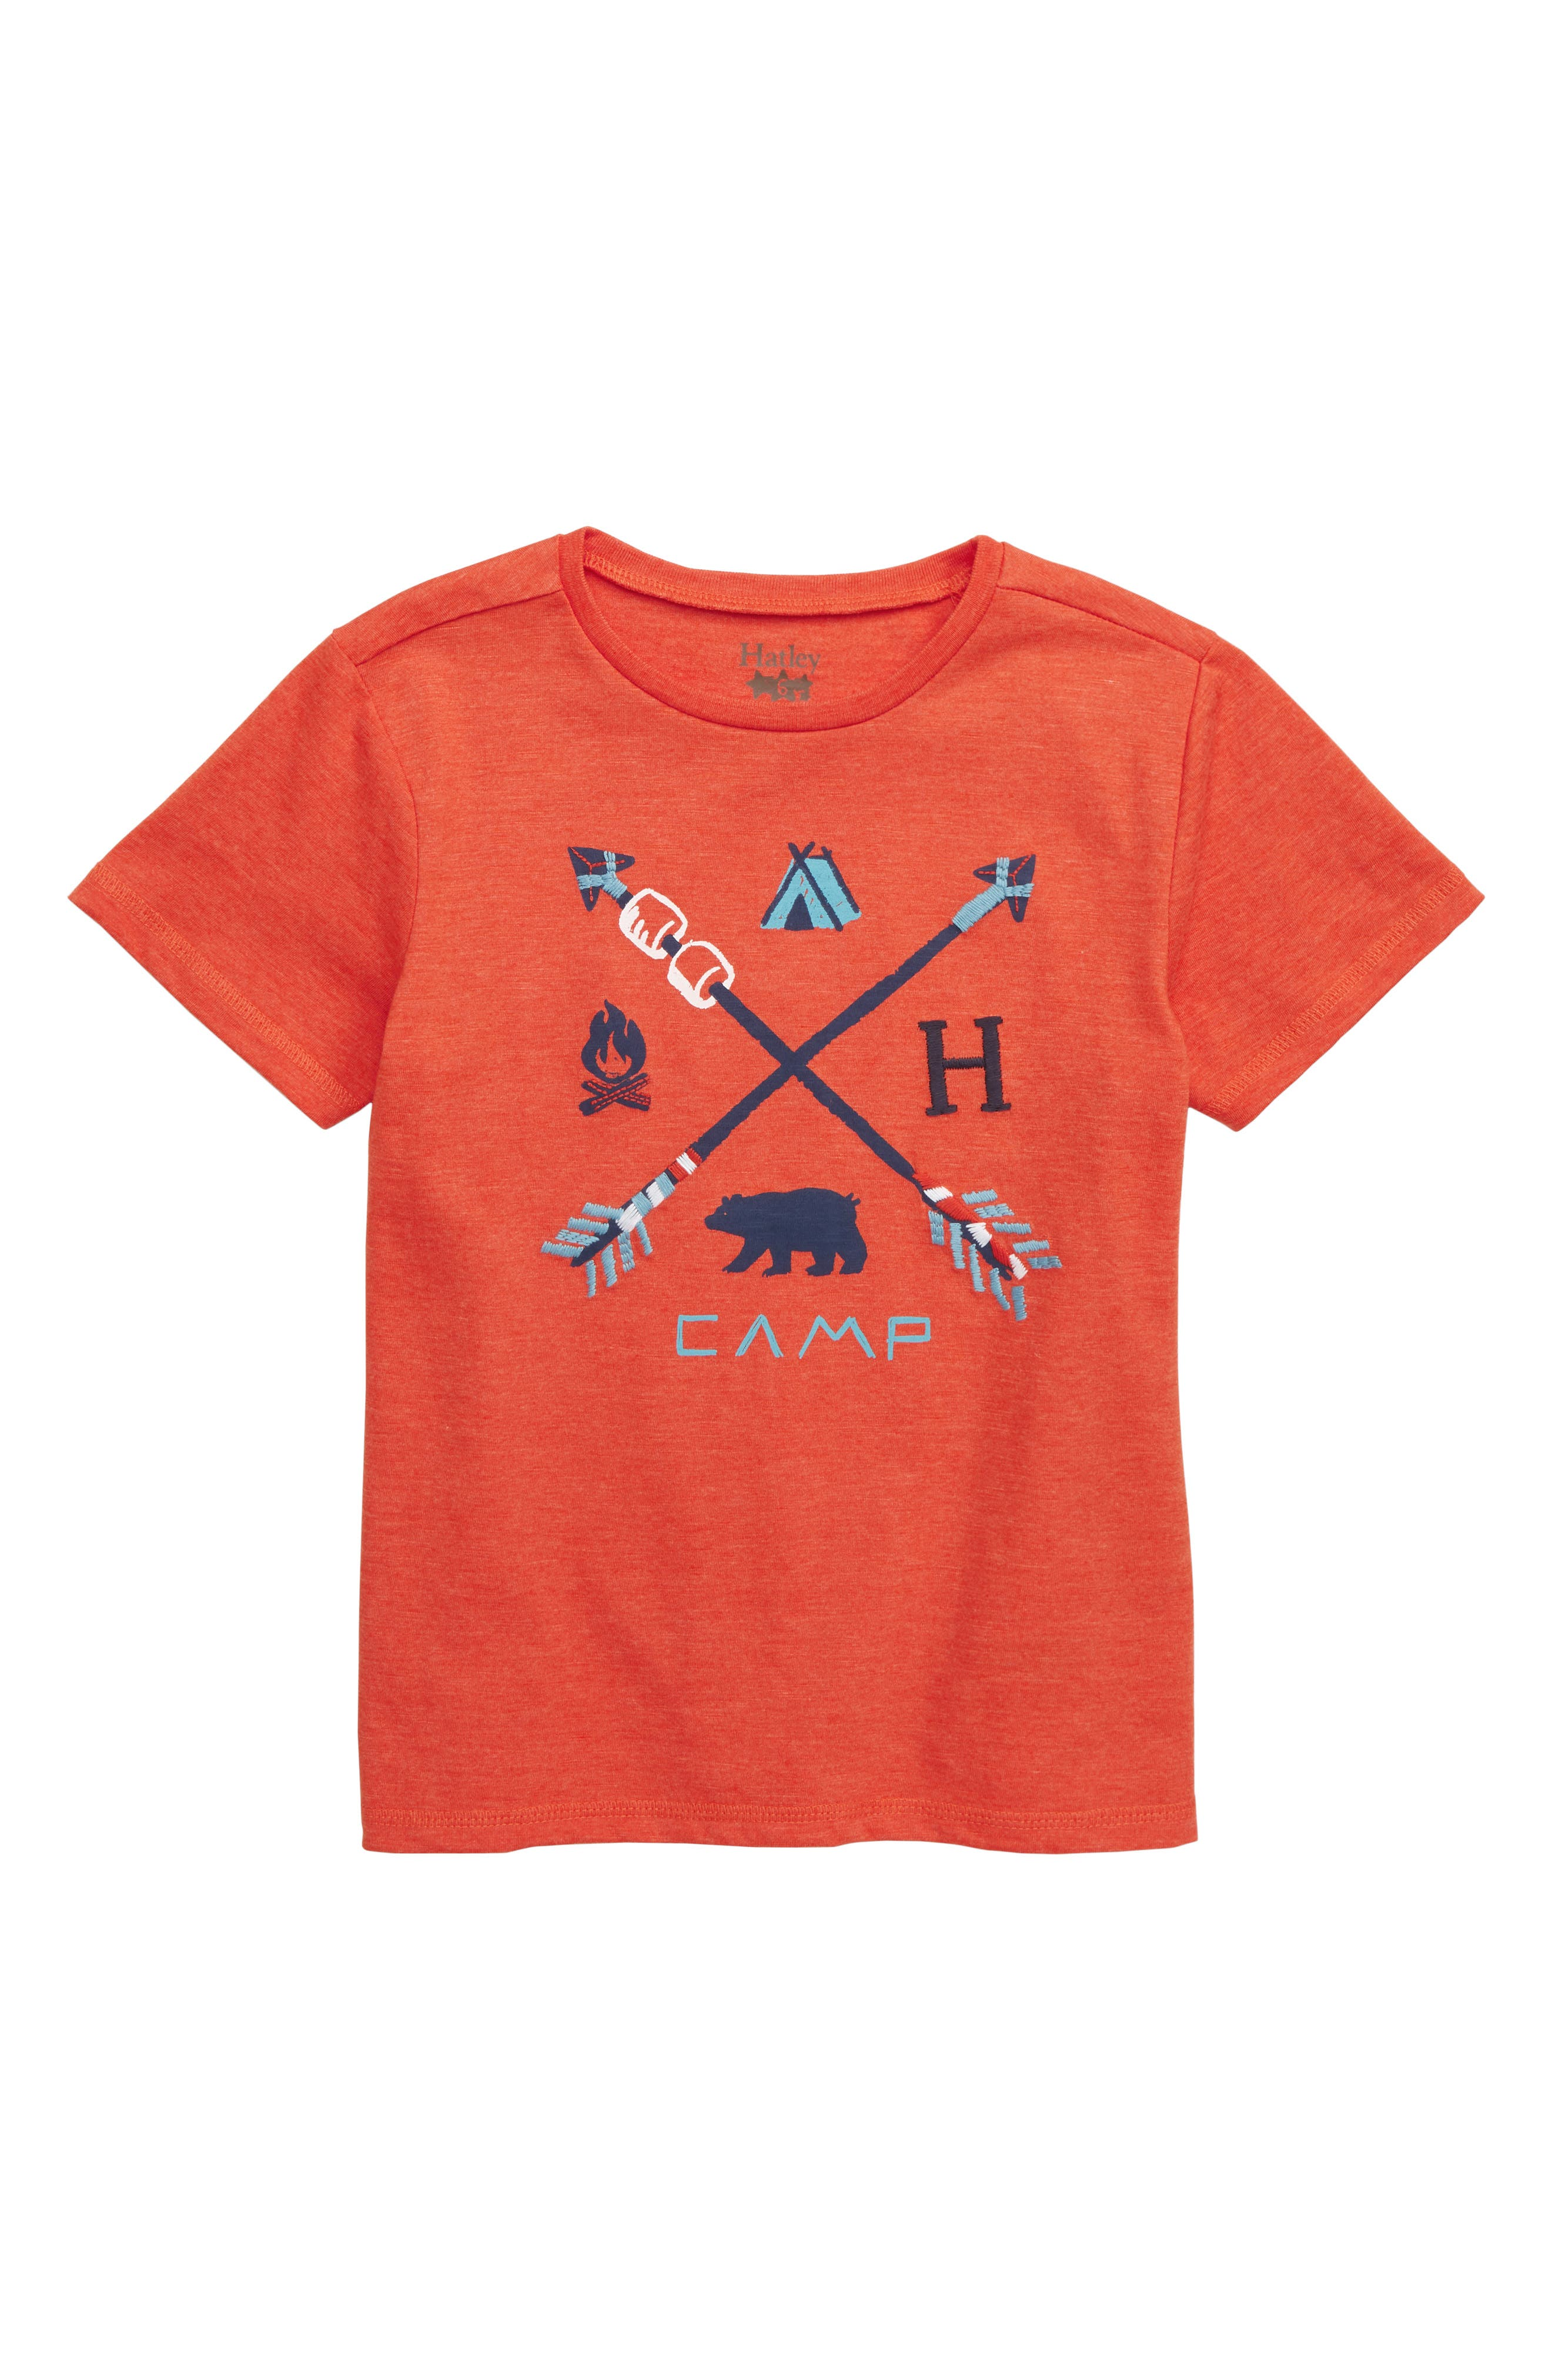 HATLEY, Retro Camp Graphic T-Shirt, Main thumbnail 1, color, ORANGE